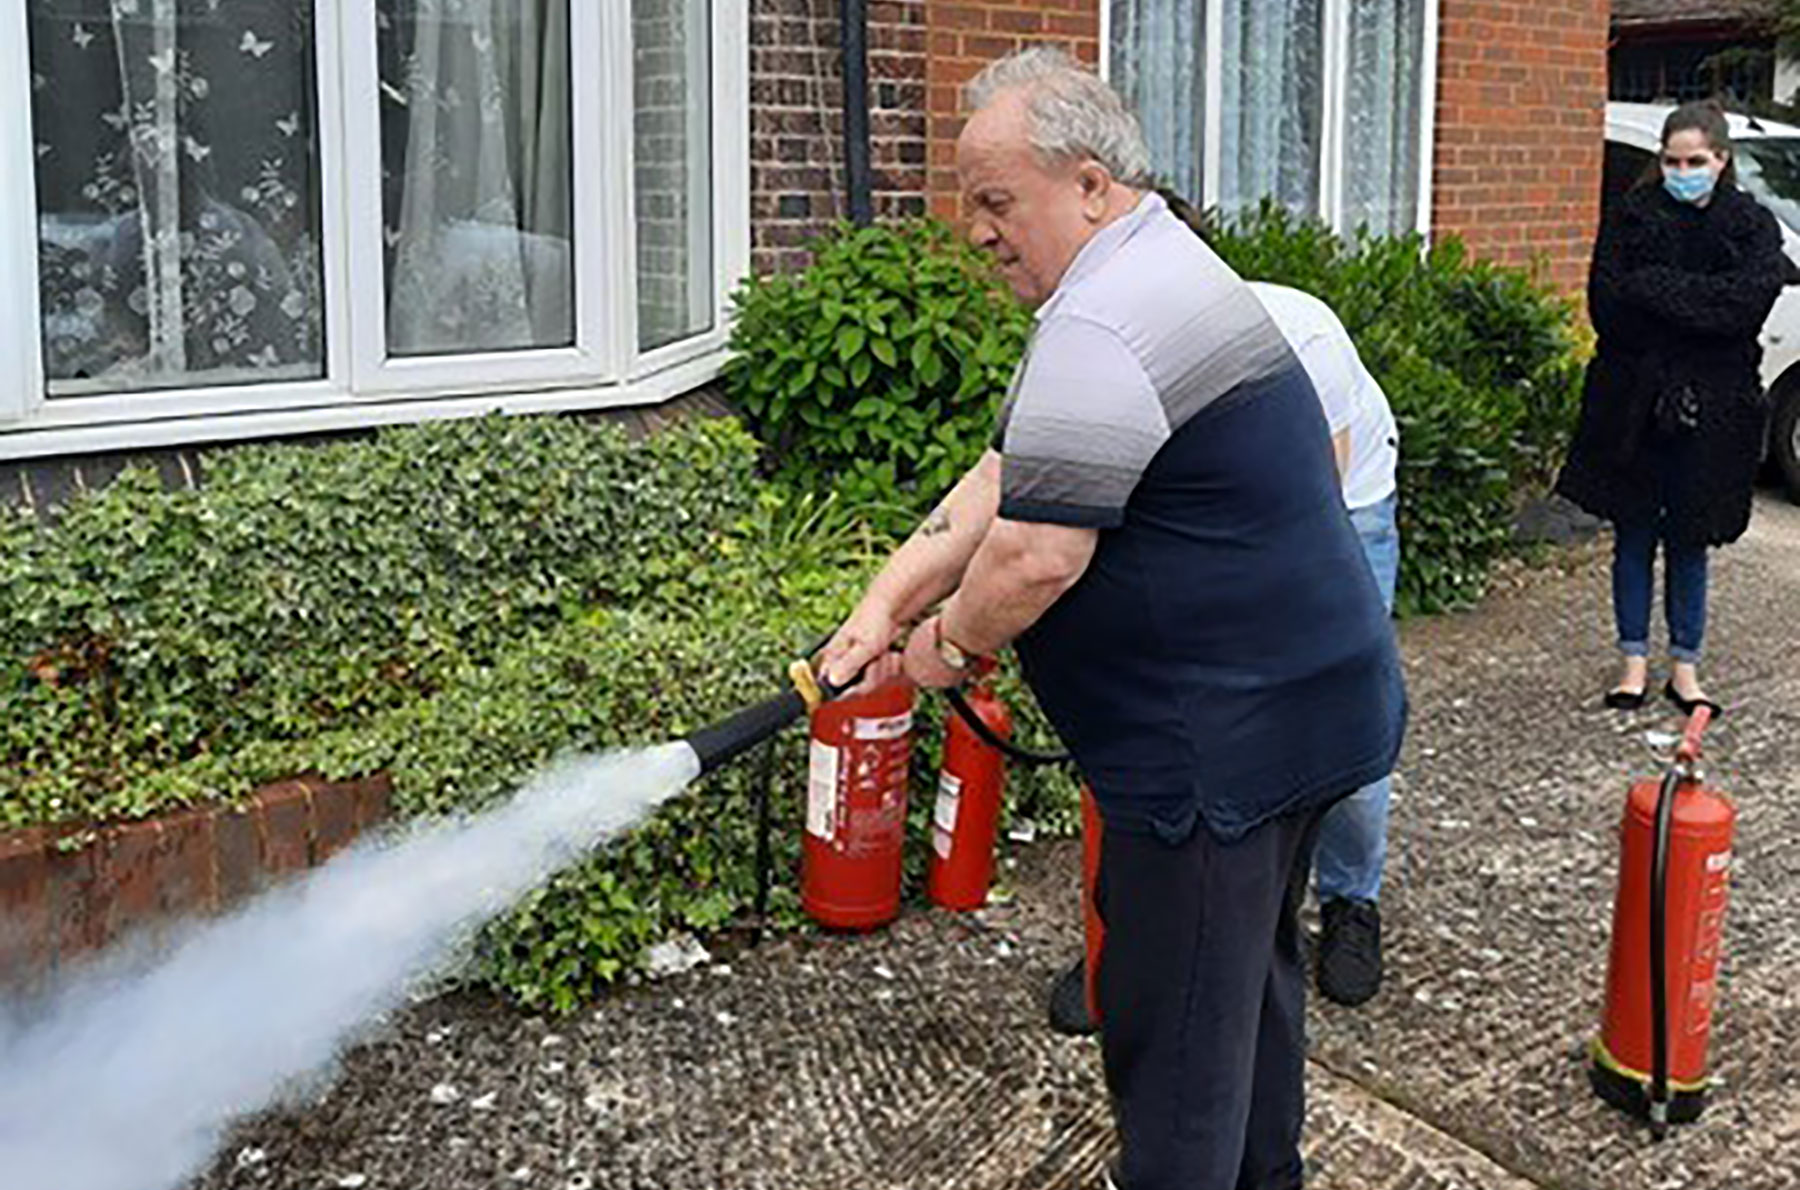 Resident James becomes Fire Warden